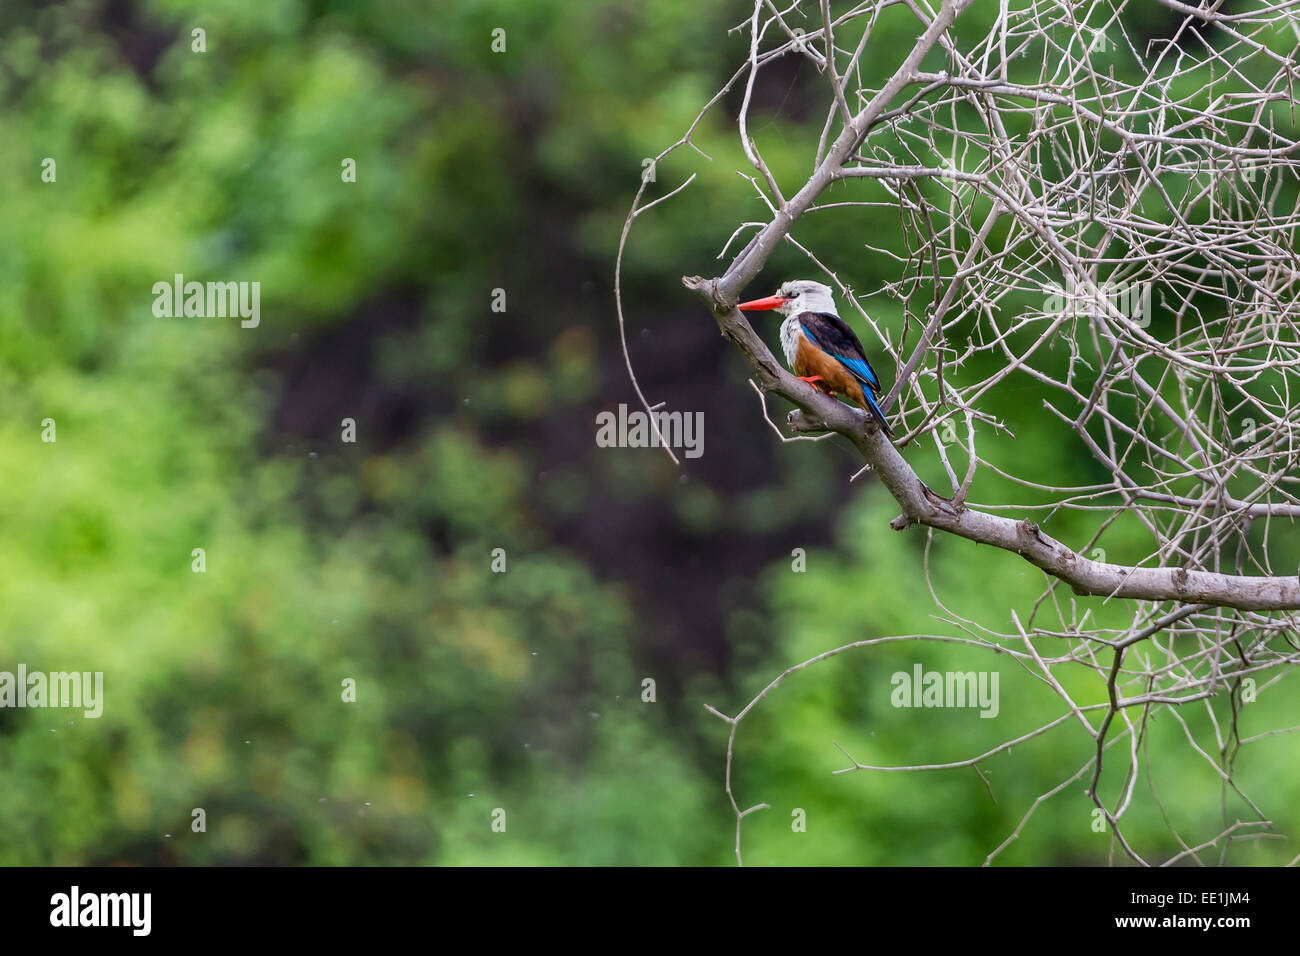 Male grey-headed kingfisher (Halcyon leucocephala) at Curral Grande, Fogo Island, Cape Verde, Africa - Stock Image